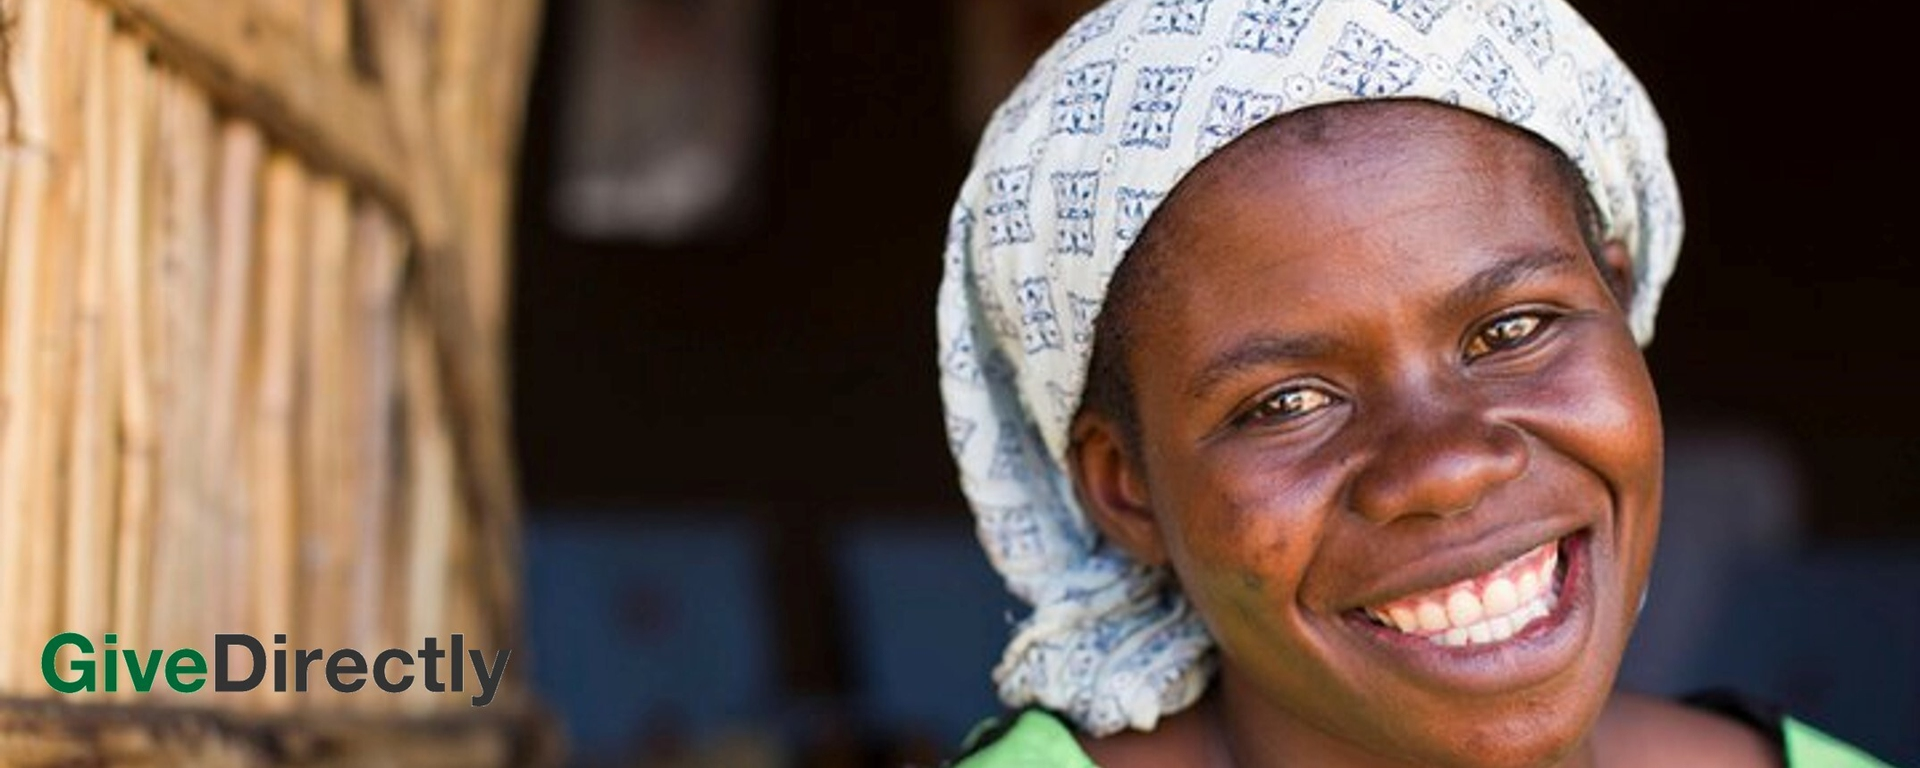 GiveDirectly - Chief Operating Officer - International Movemeback African opportunity cover image